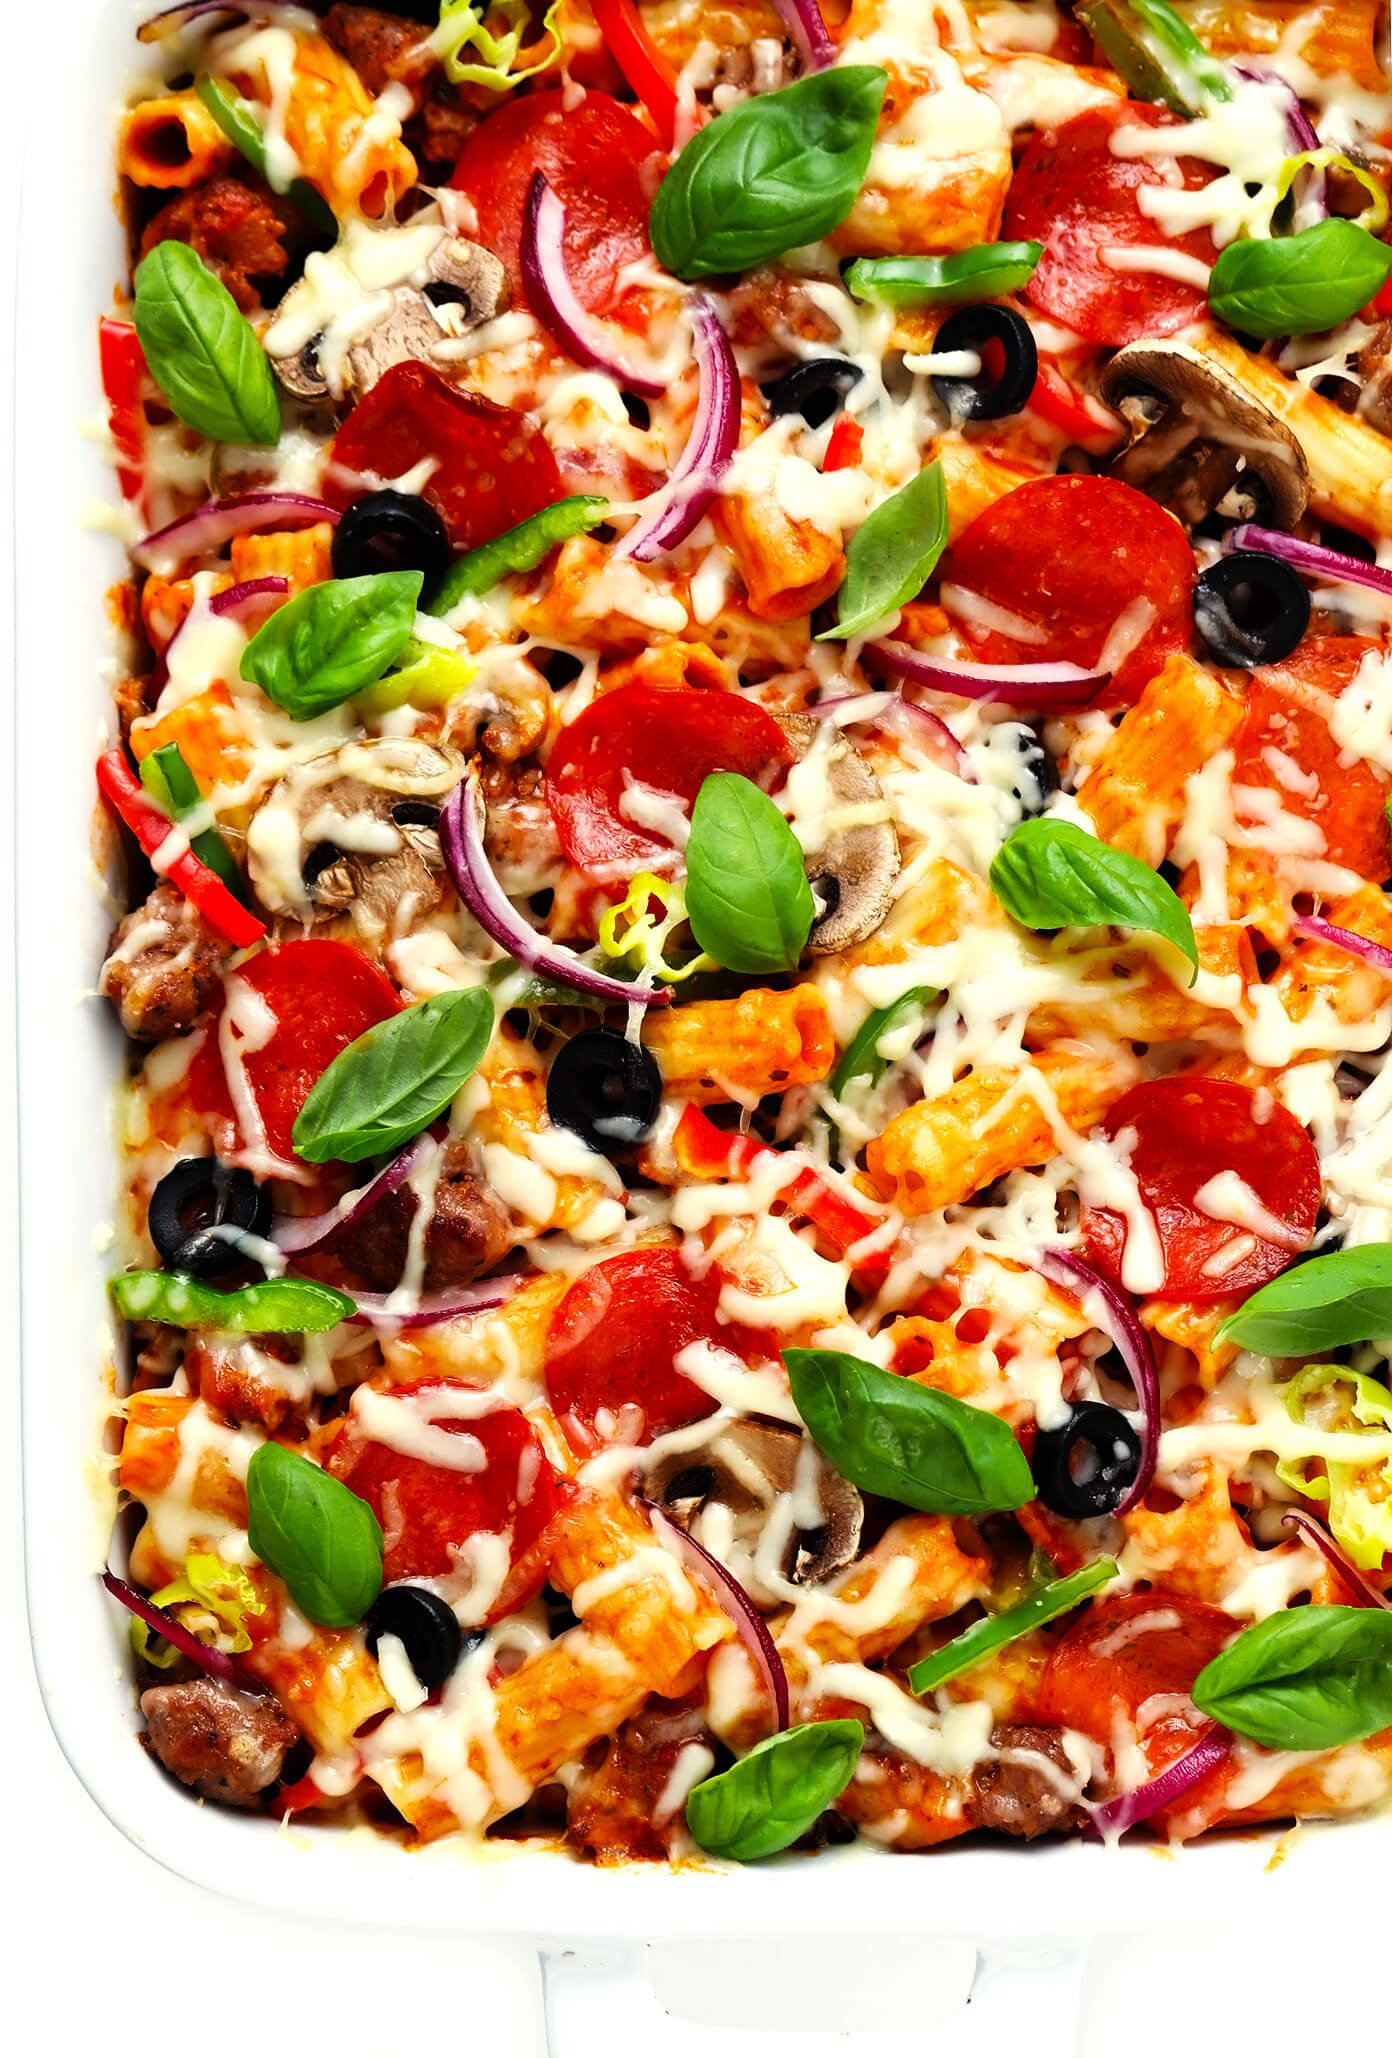 Pizza Baked Ziti in Baking Dish with Basil Garnish